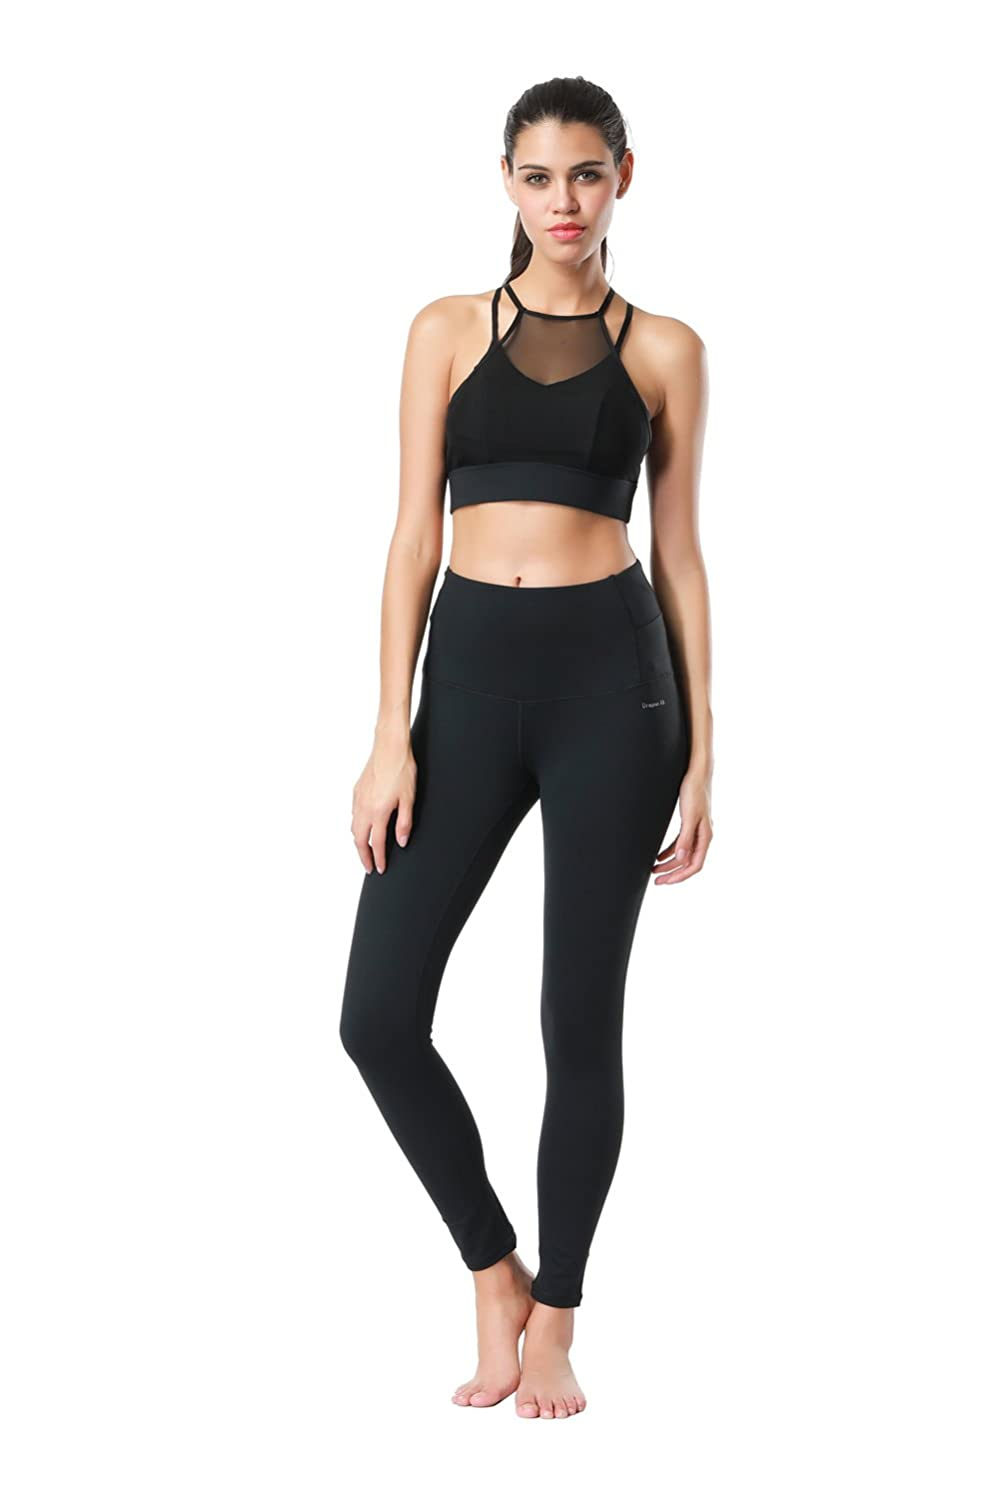 ae77cd84341c19 Amazon.com: Dragon Fit Compression Yoga Pants Power Stretch Workout Leggings  with High Waist Tummy Control: Clothing